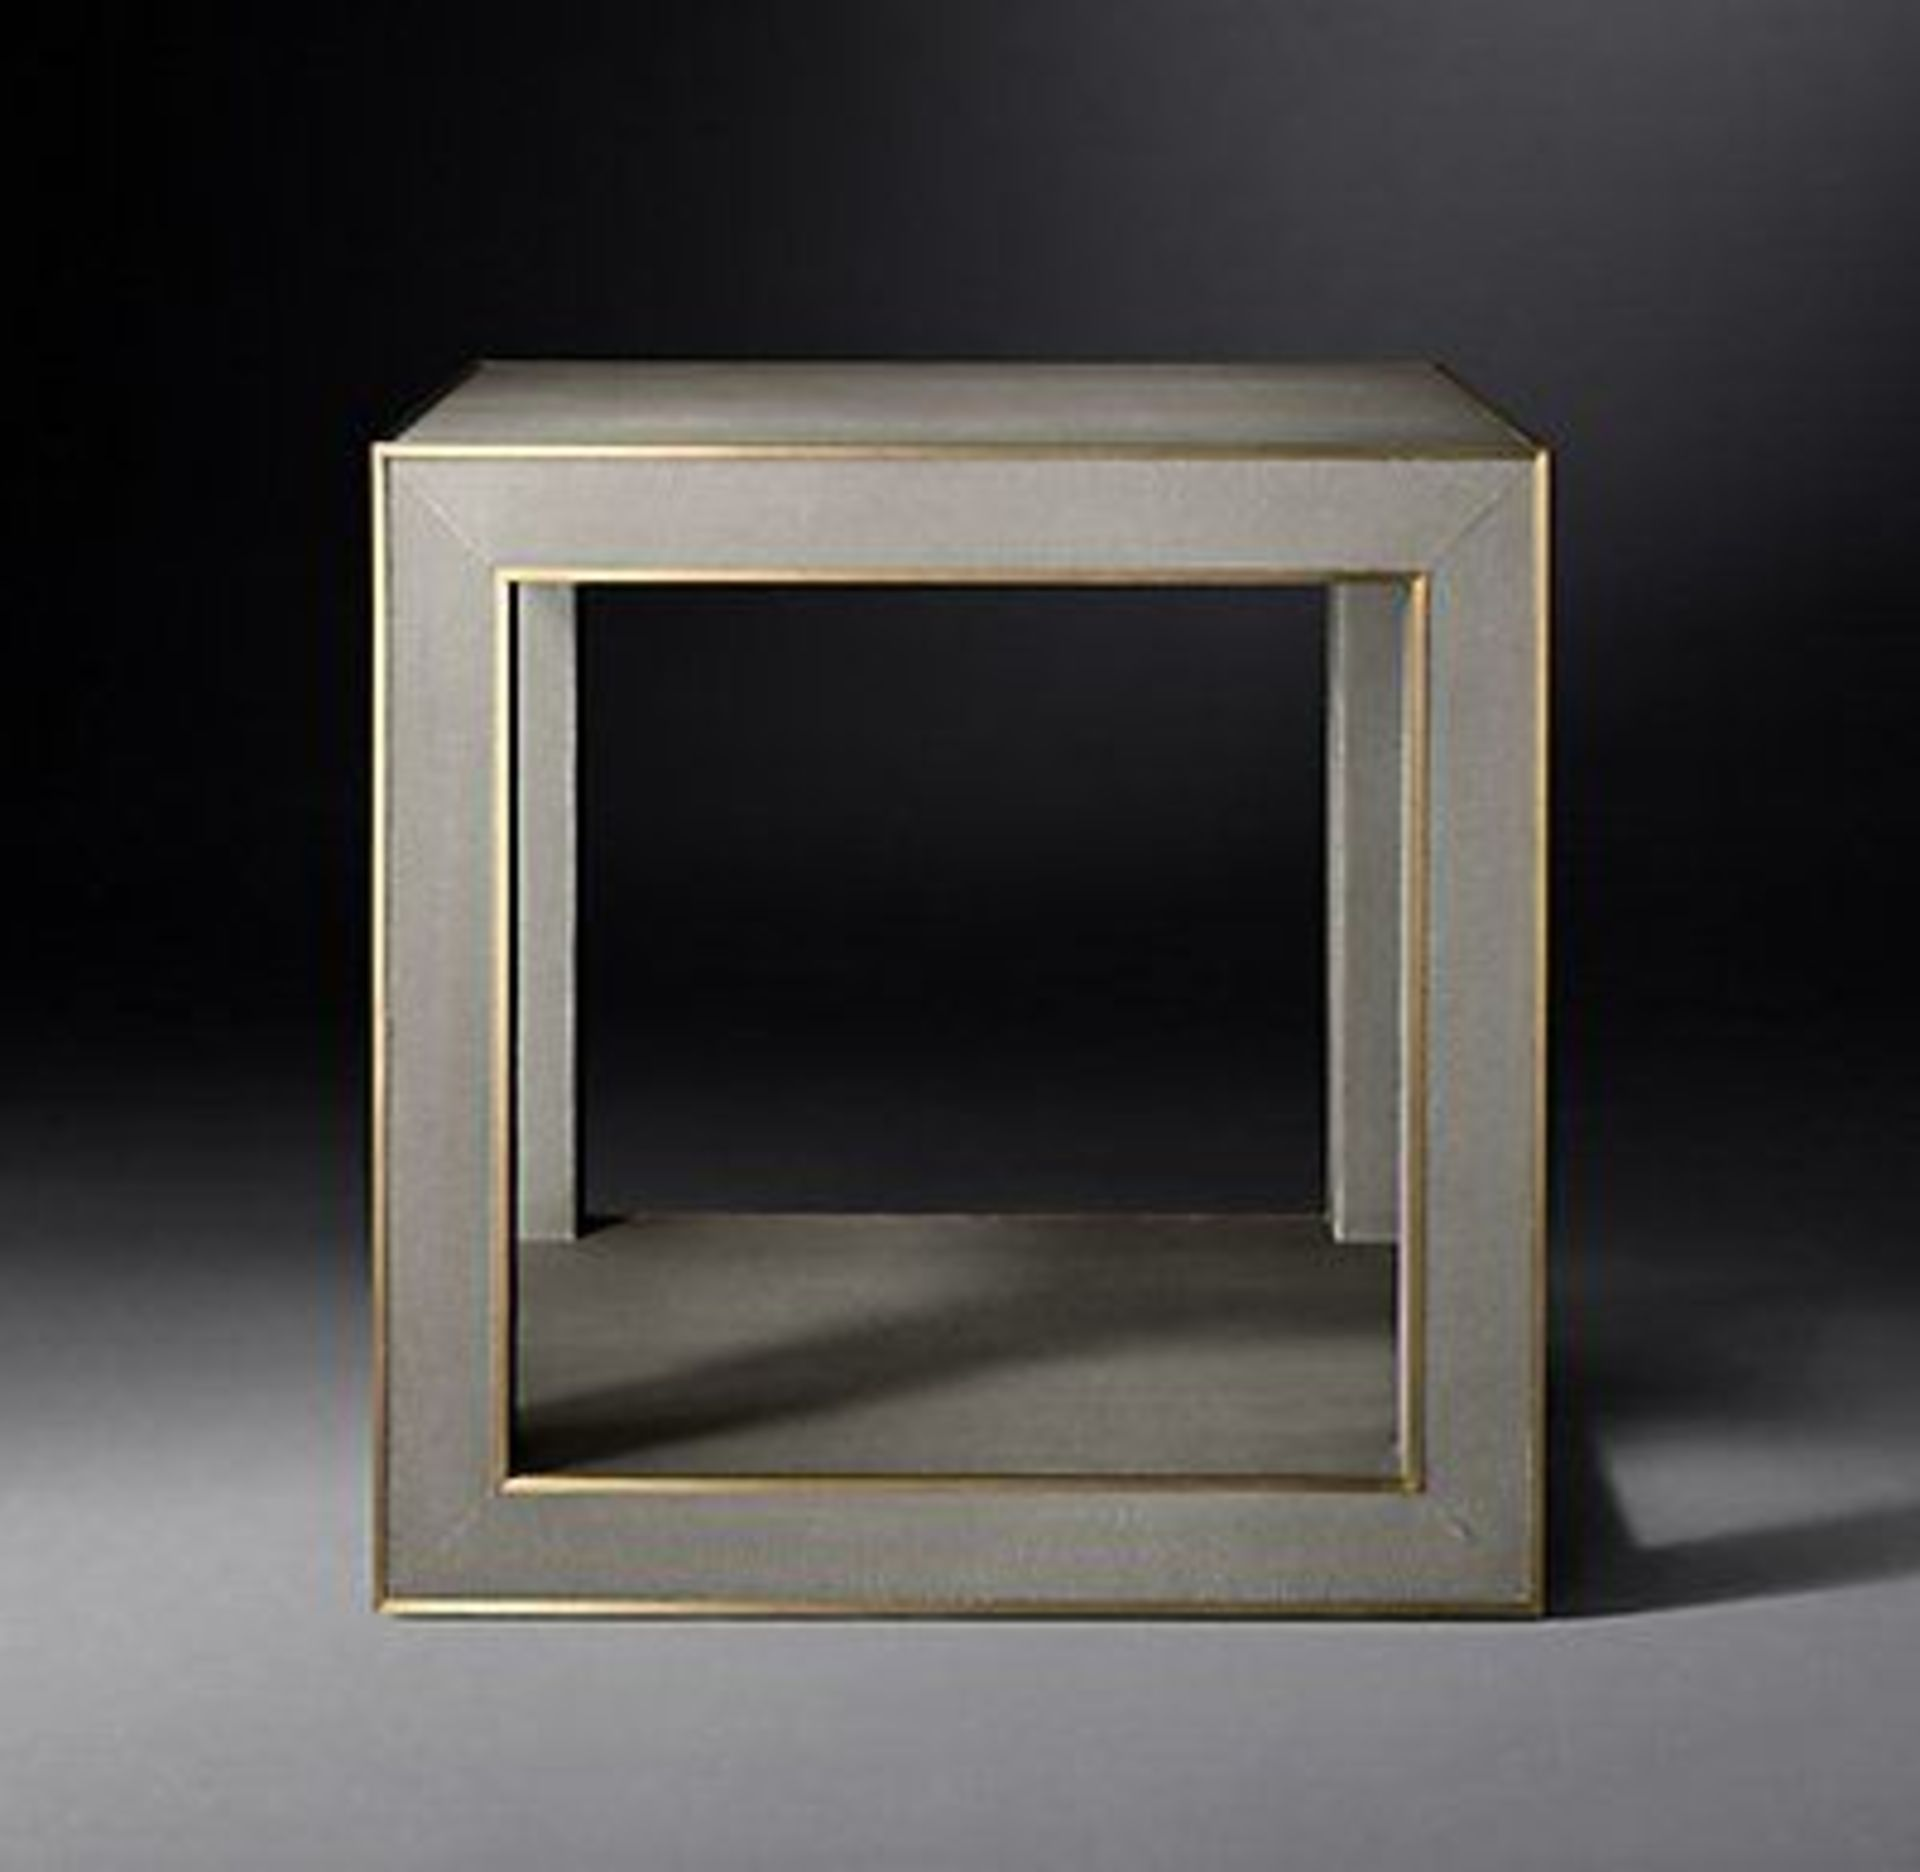 Lot 51 - Cela Grey Shagreen Square Side Table Crafted Of Shagreen-Embossed Leather With The Texture Pattern